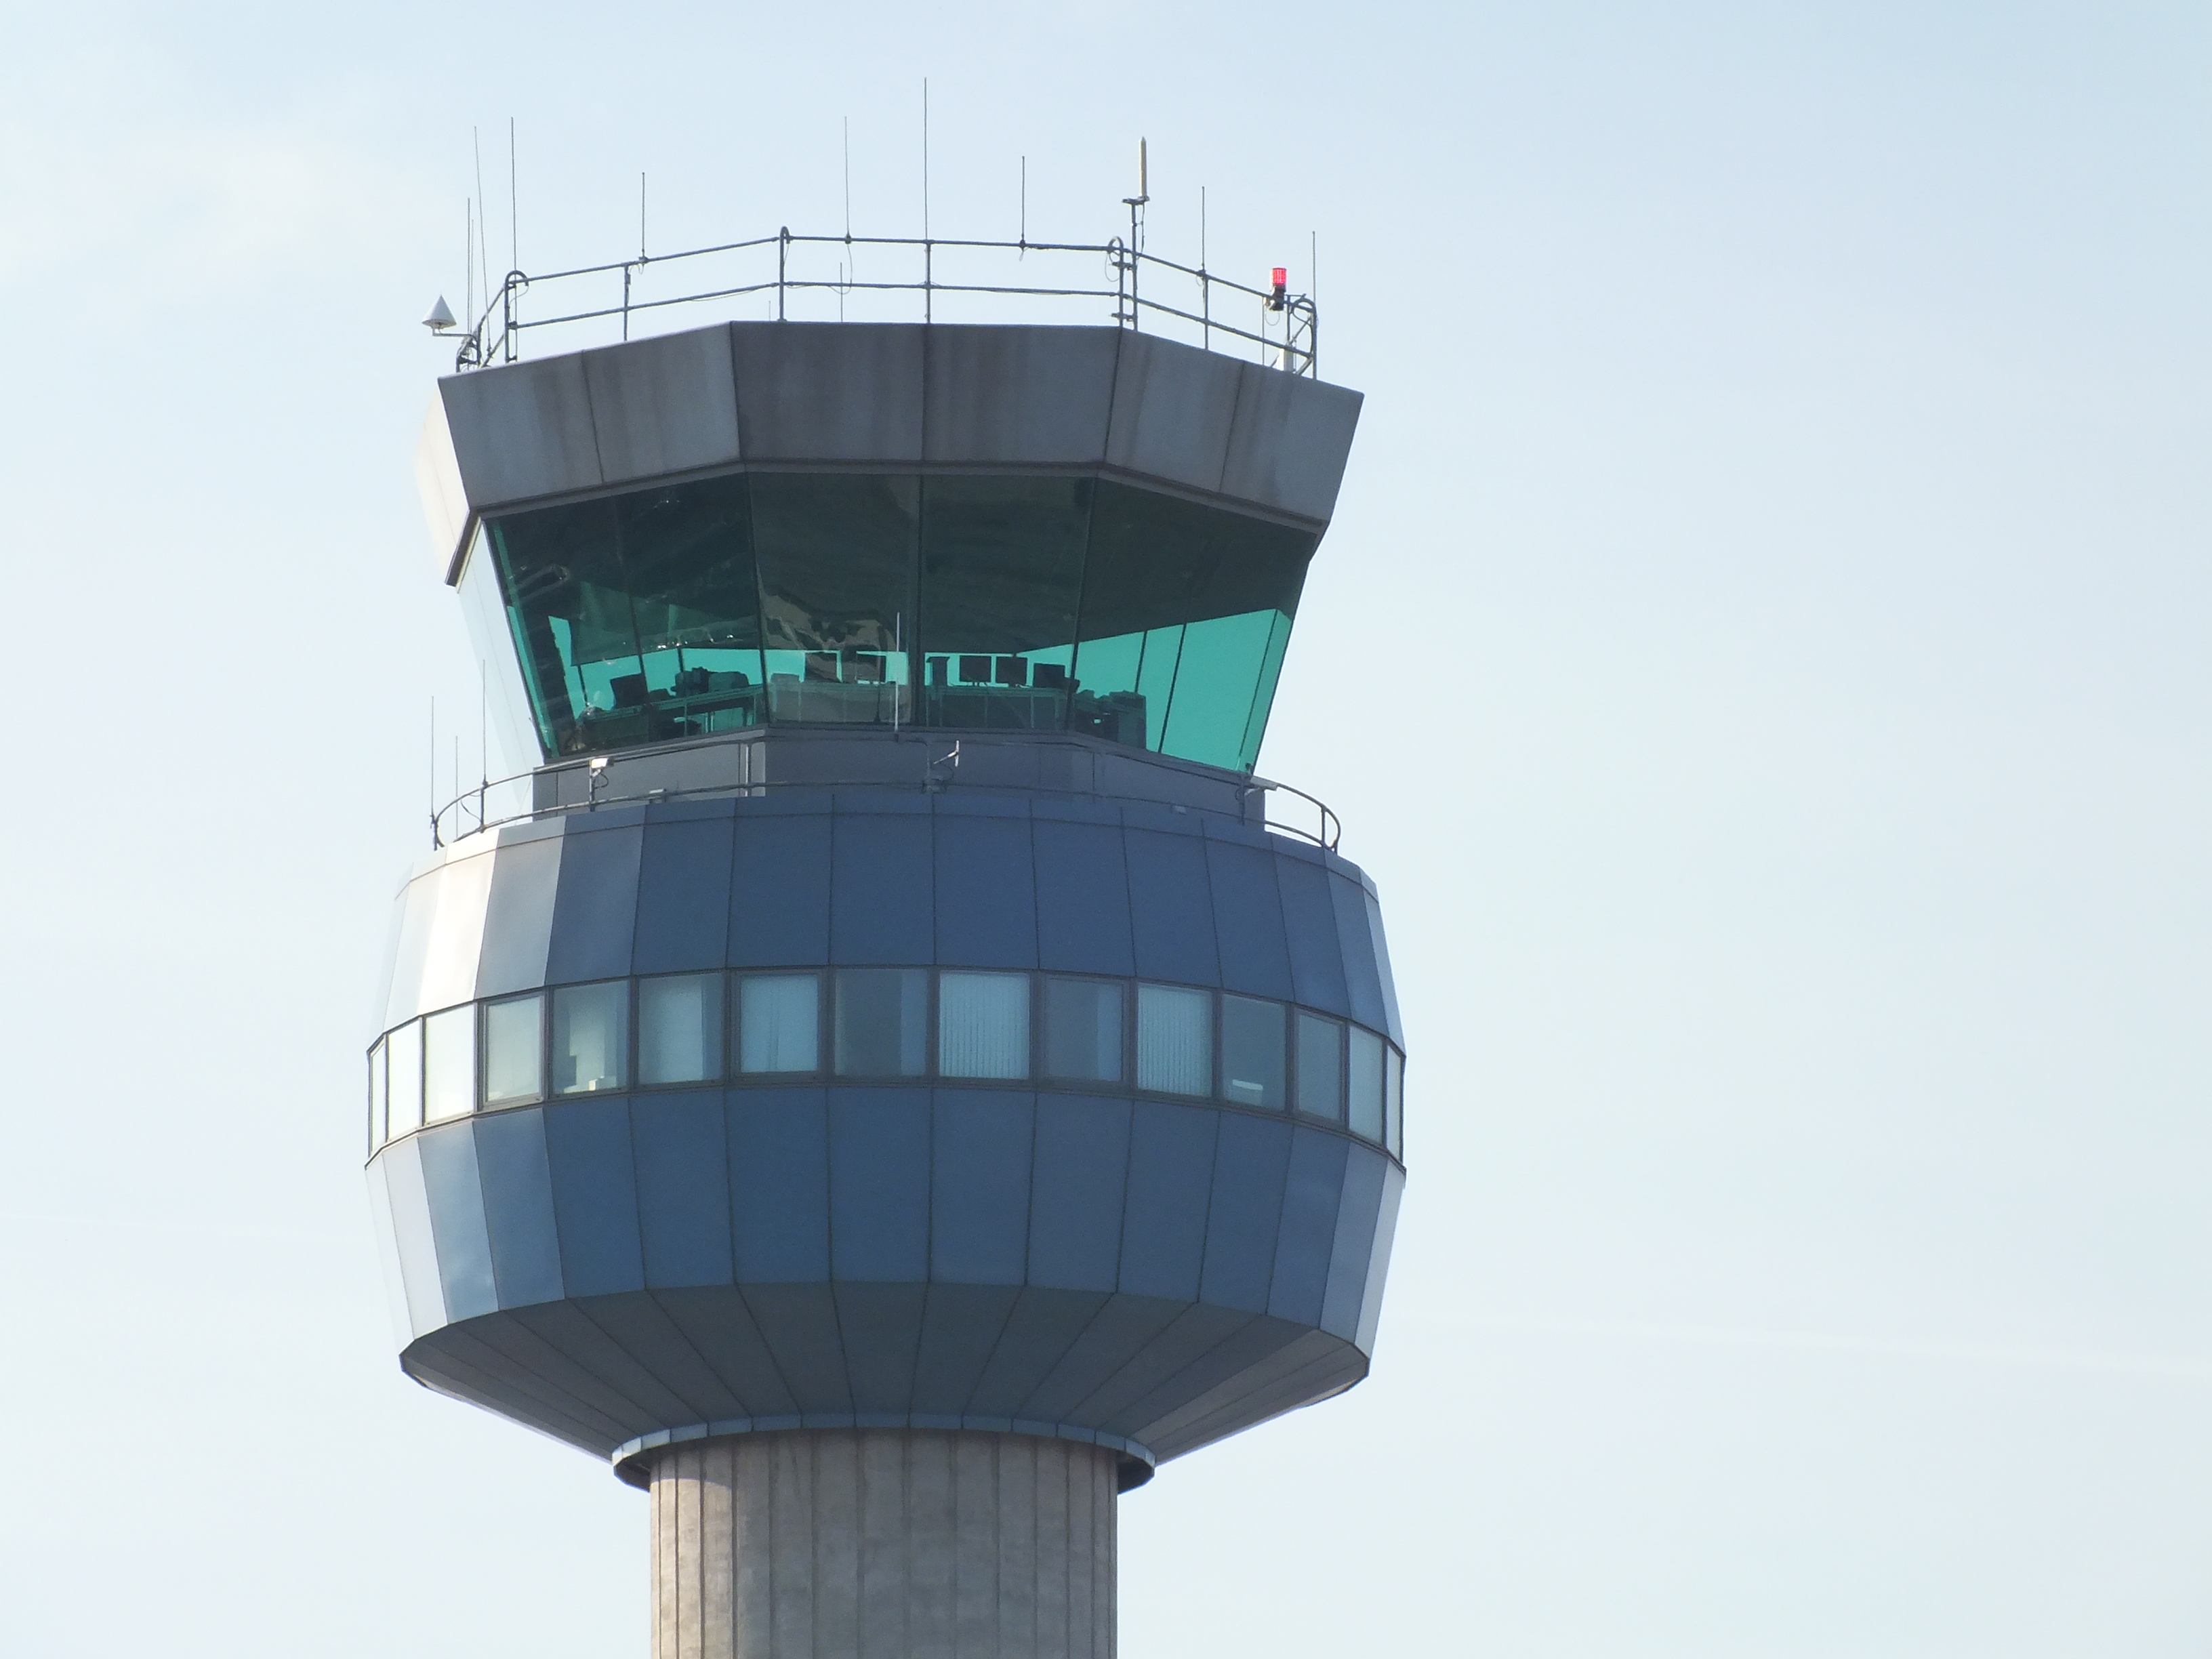 Control tower, Control, Flight, Structure, Tower, HQ Photo